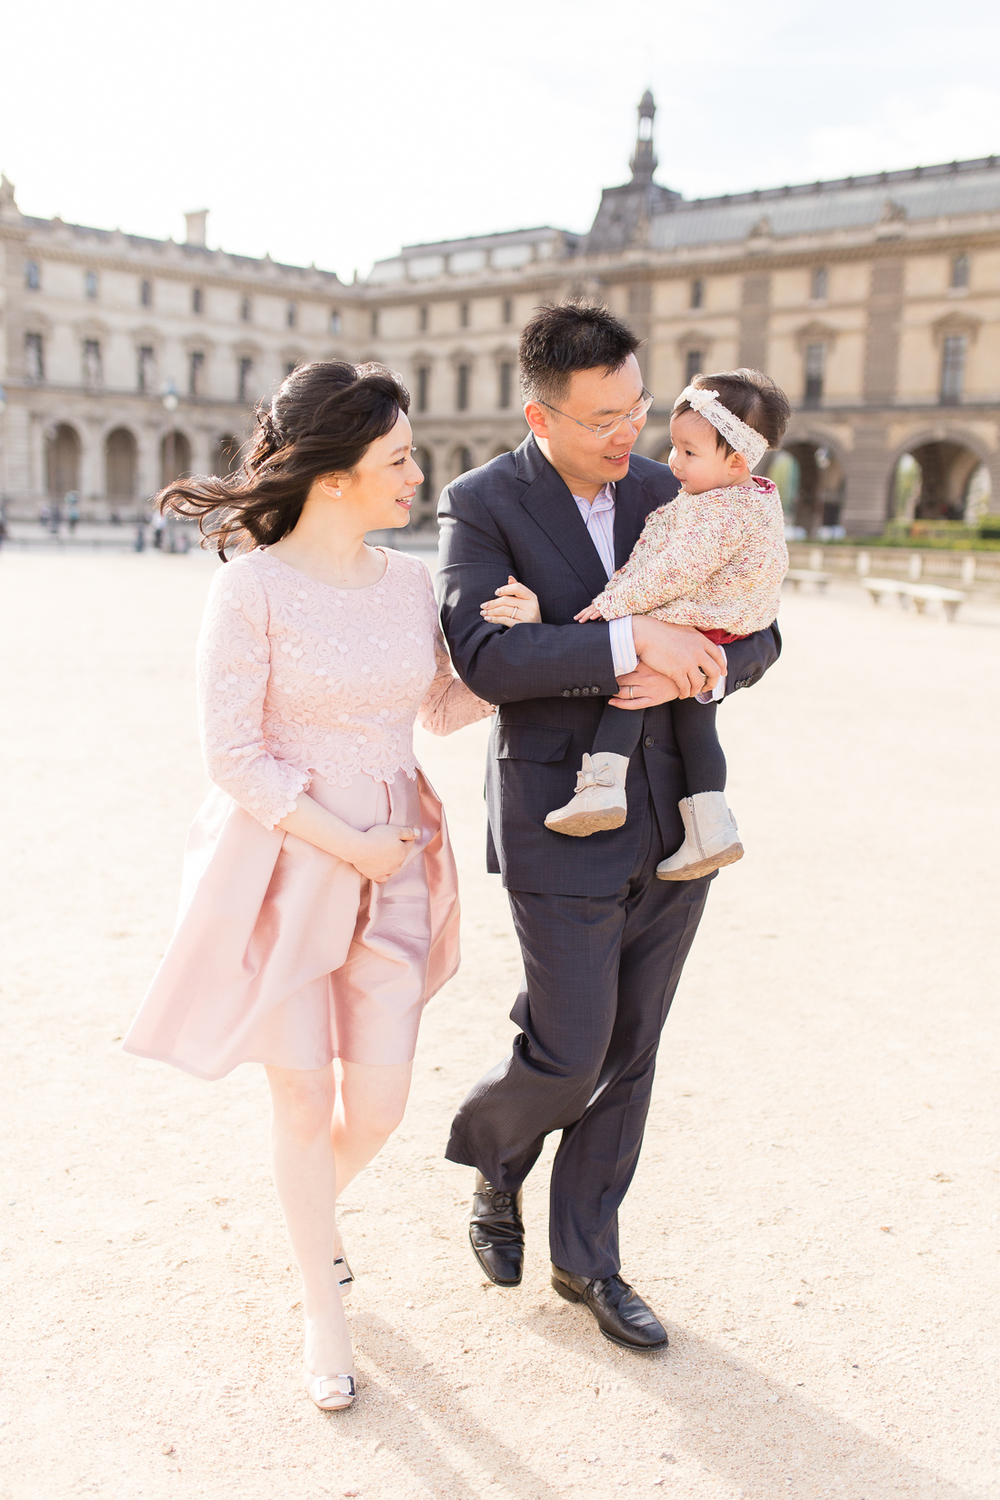 spring-fall-family-maternity-paris-palais-royal-louvre-photo-session-inspiration-12